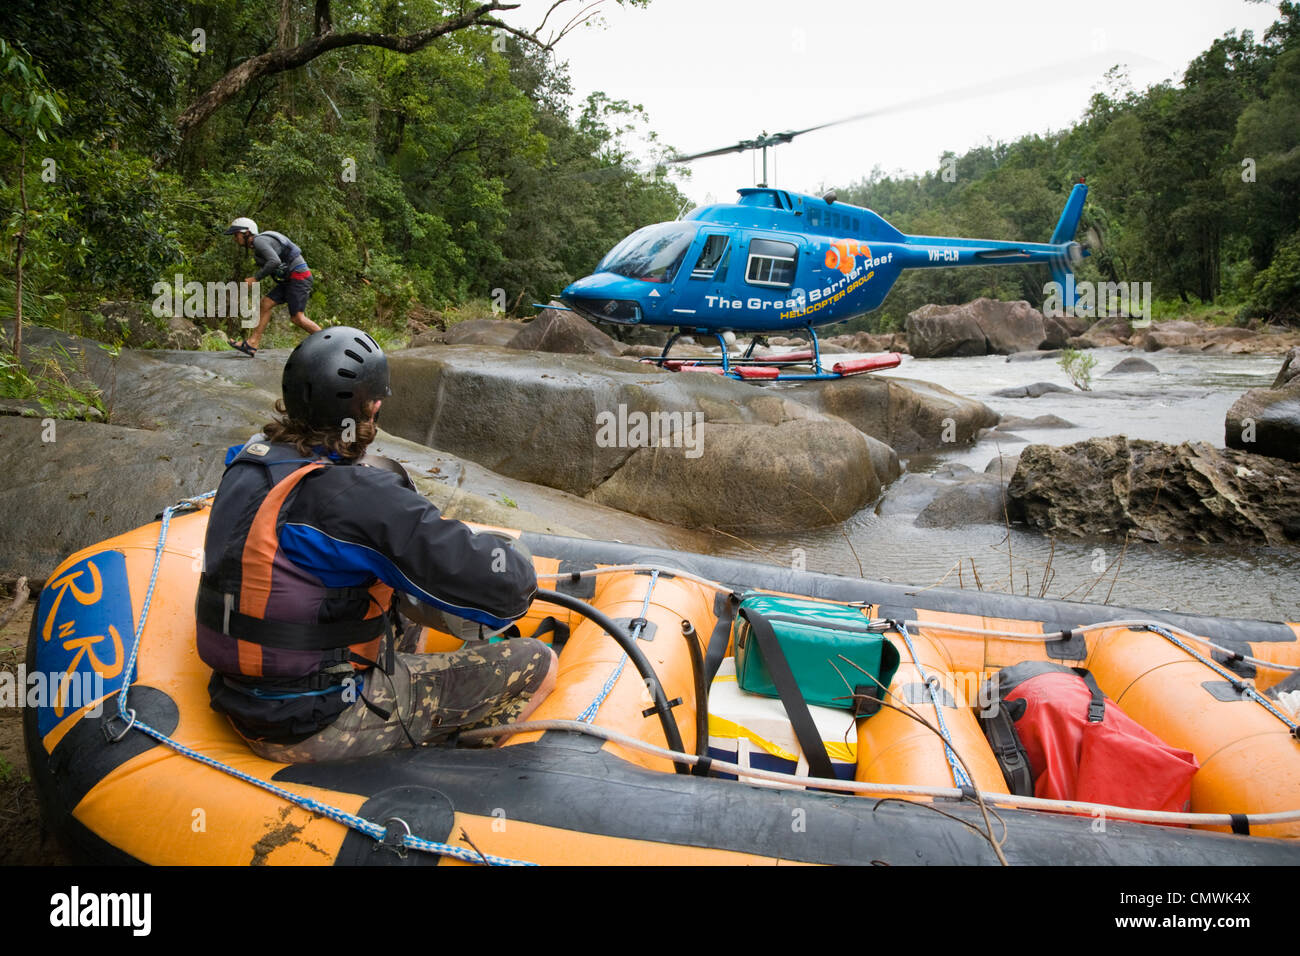 Helicopter dropping off people and equipment for a heli-rafting adventure on the North Johnstone River, Queensland, - Stock Image